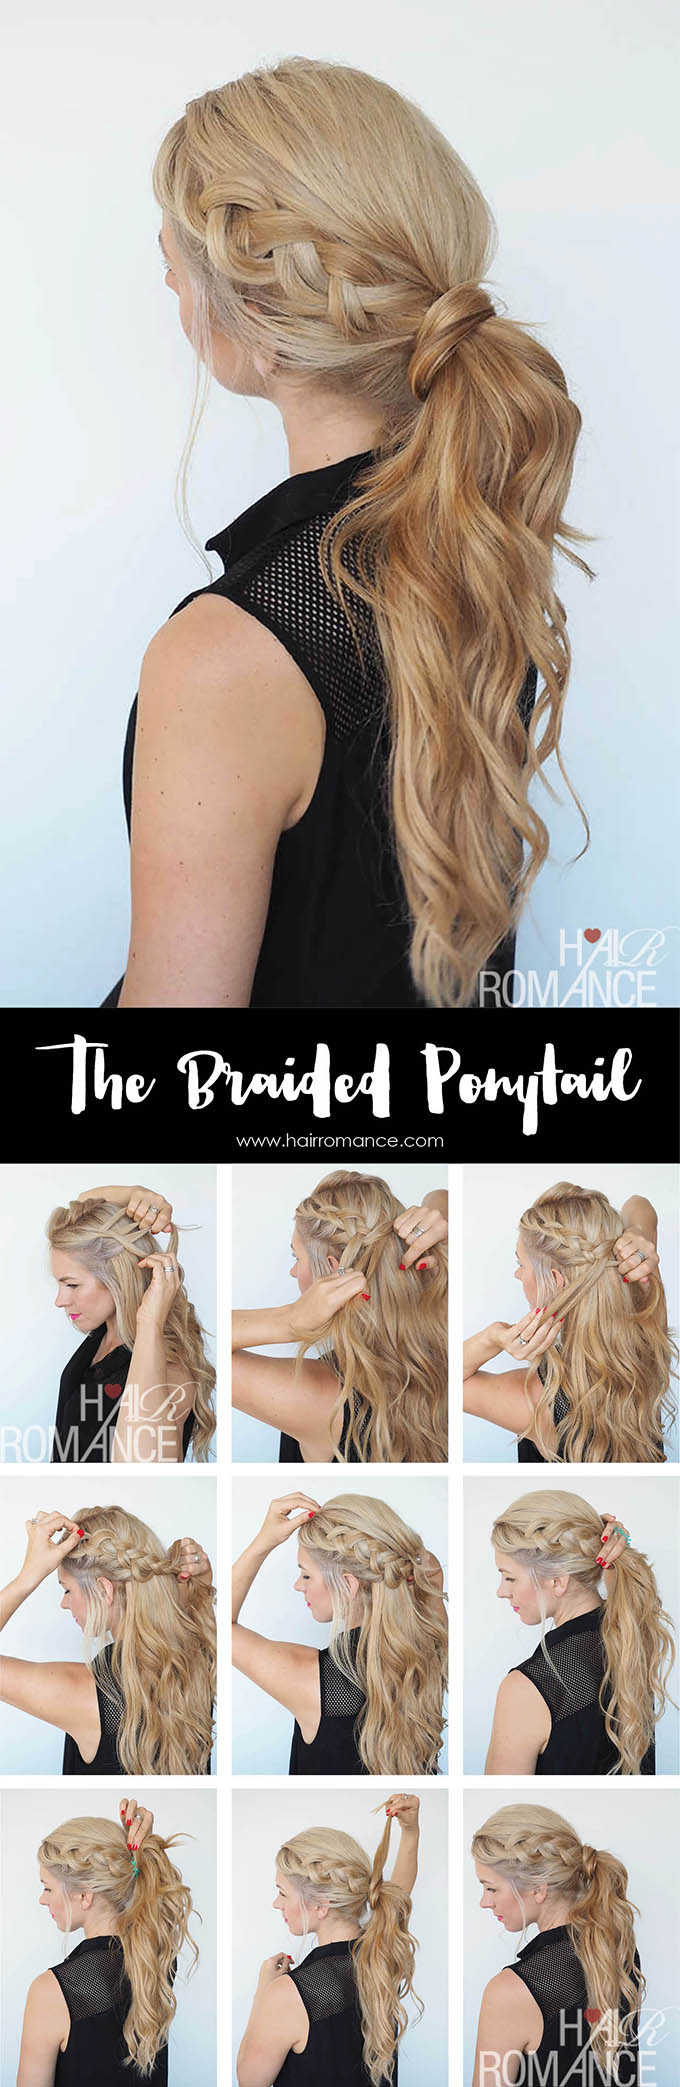 Hair Romance - braided ponytail hairstyle tutorial